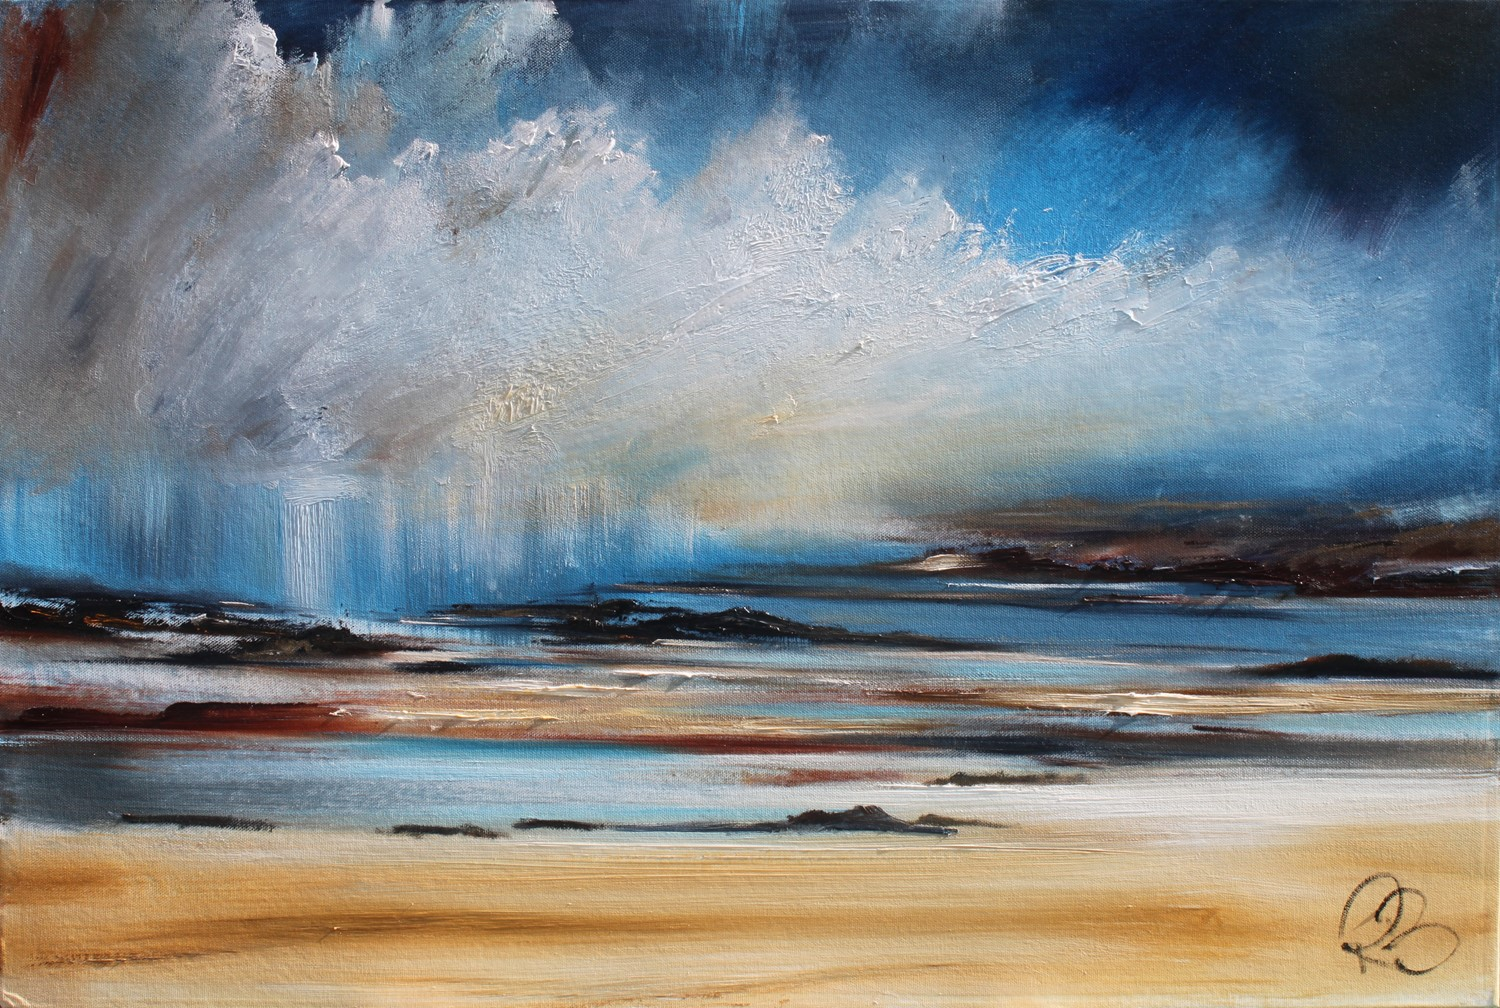 'The Gathering Storm ' by artist Rosanne Barr